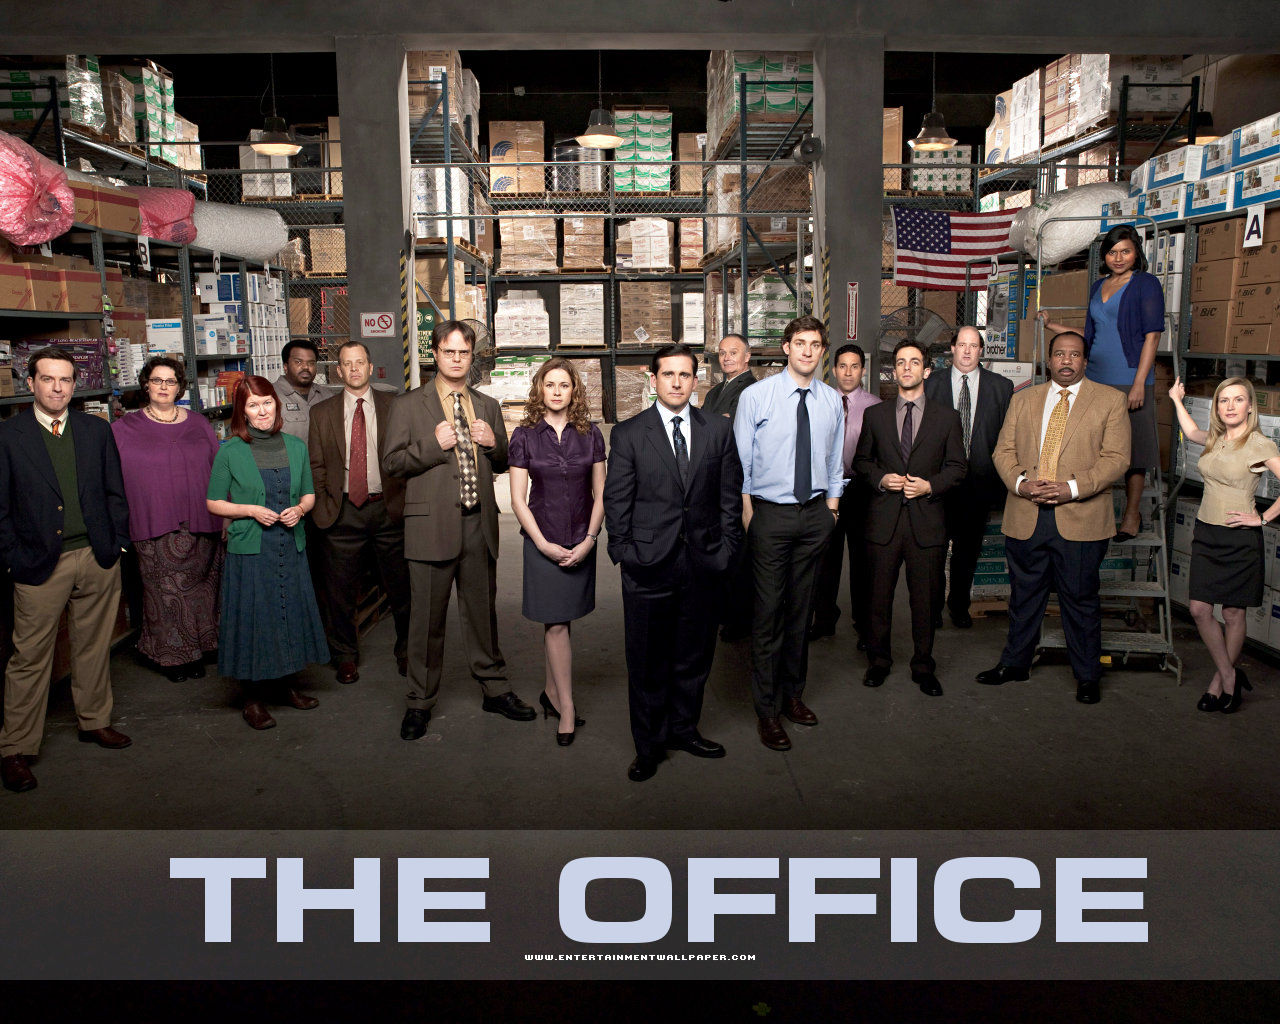 http://tvbreakroom.com/wp-content/uploads/2011/04/tv_the_office06.jpg